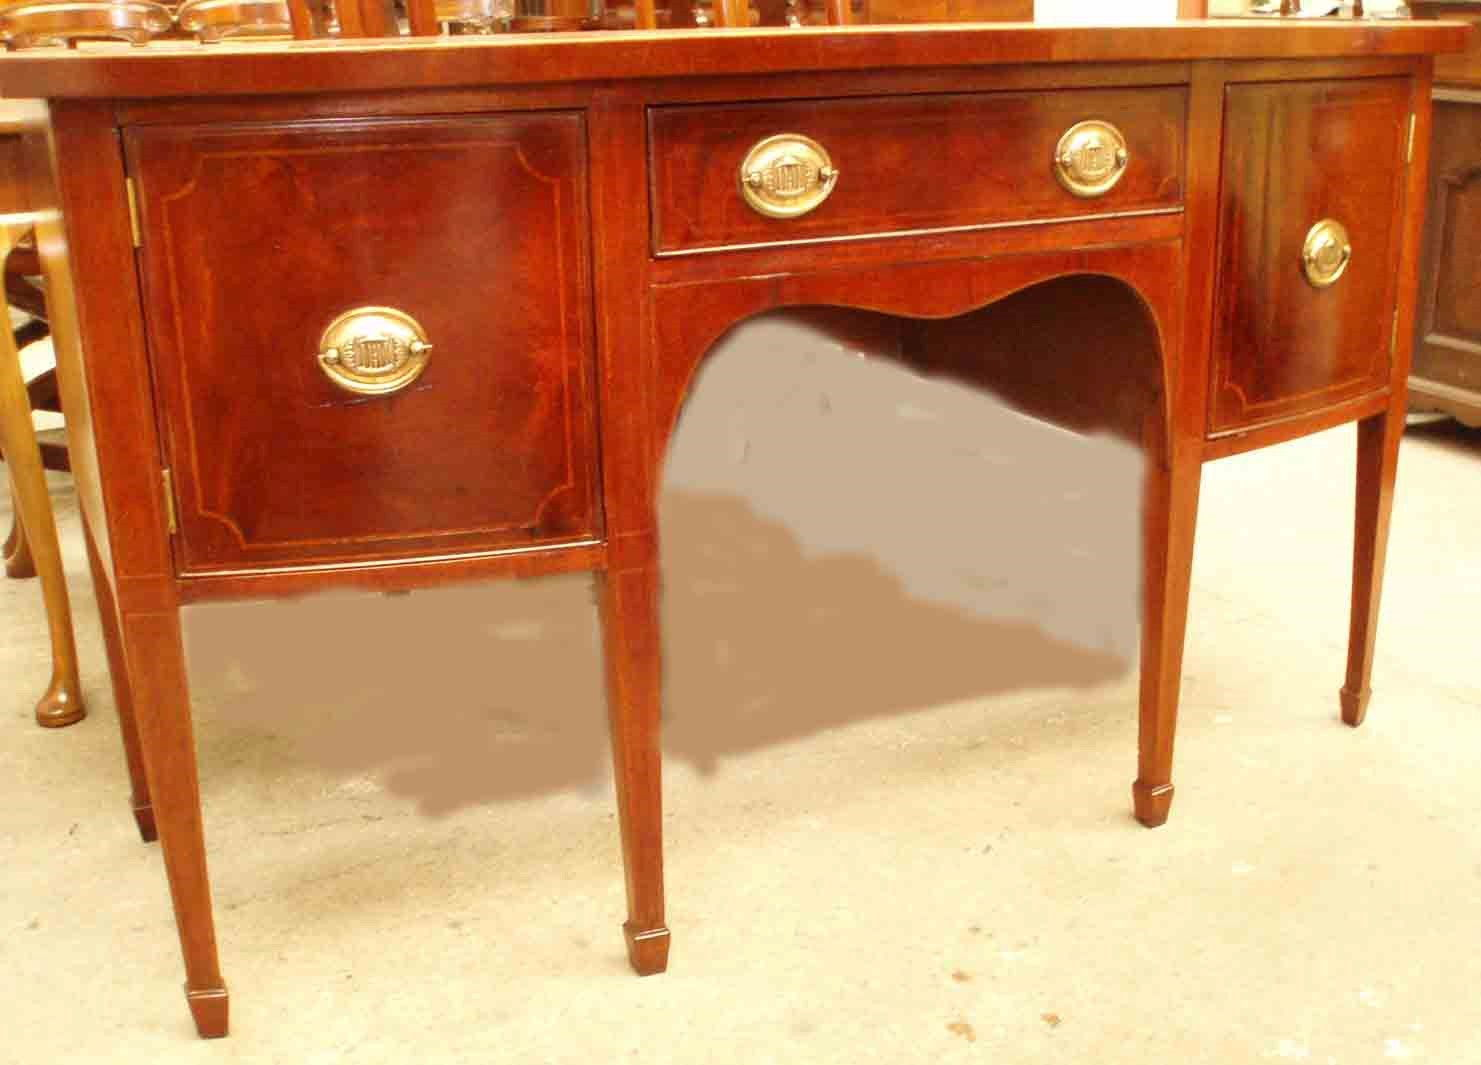 Antique furniture | antique cupboards | antique tables | antique ...